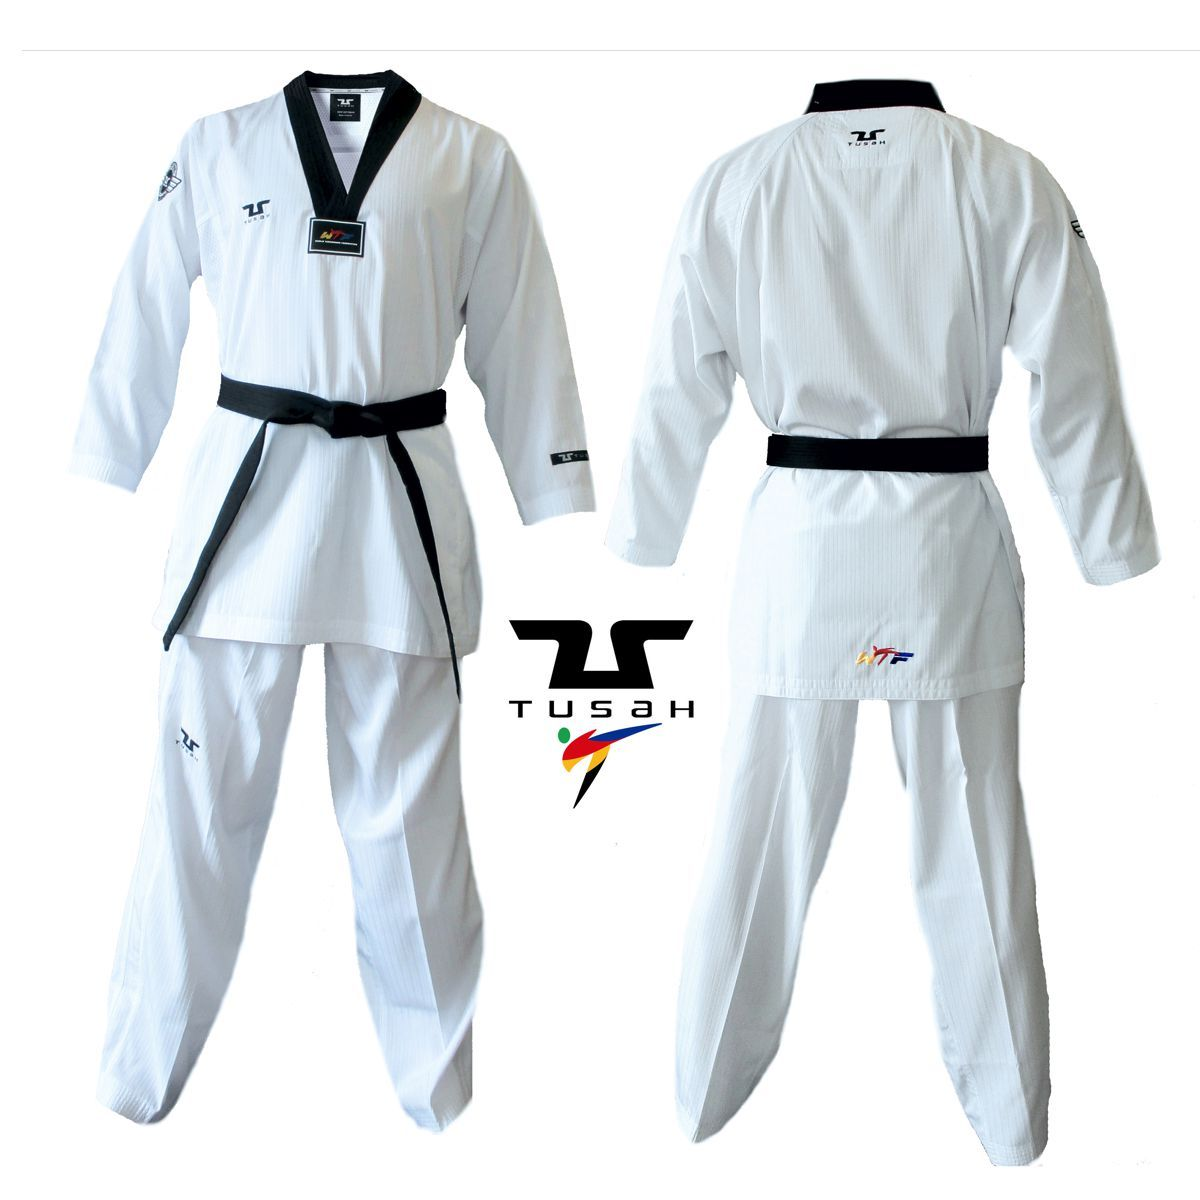 Dobok Ultraleggero per Taekwondo Tusah Premium Fighter collo Nero Omologato WT WTF MADE IN KOREA